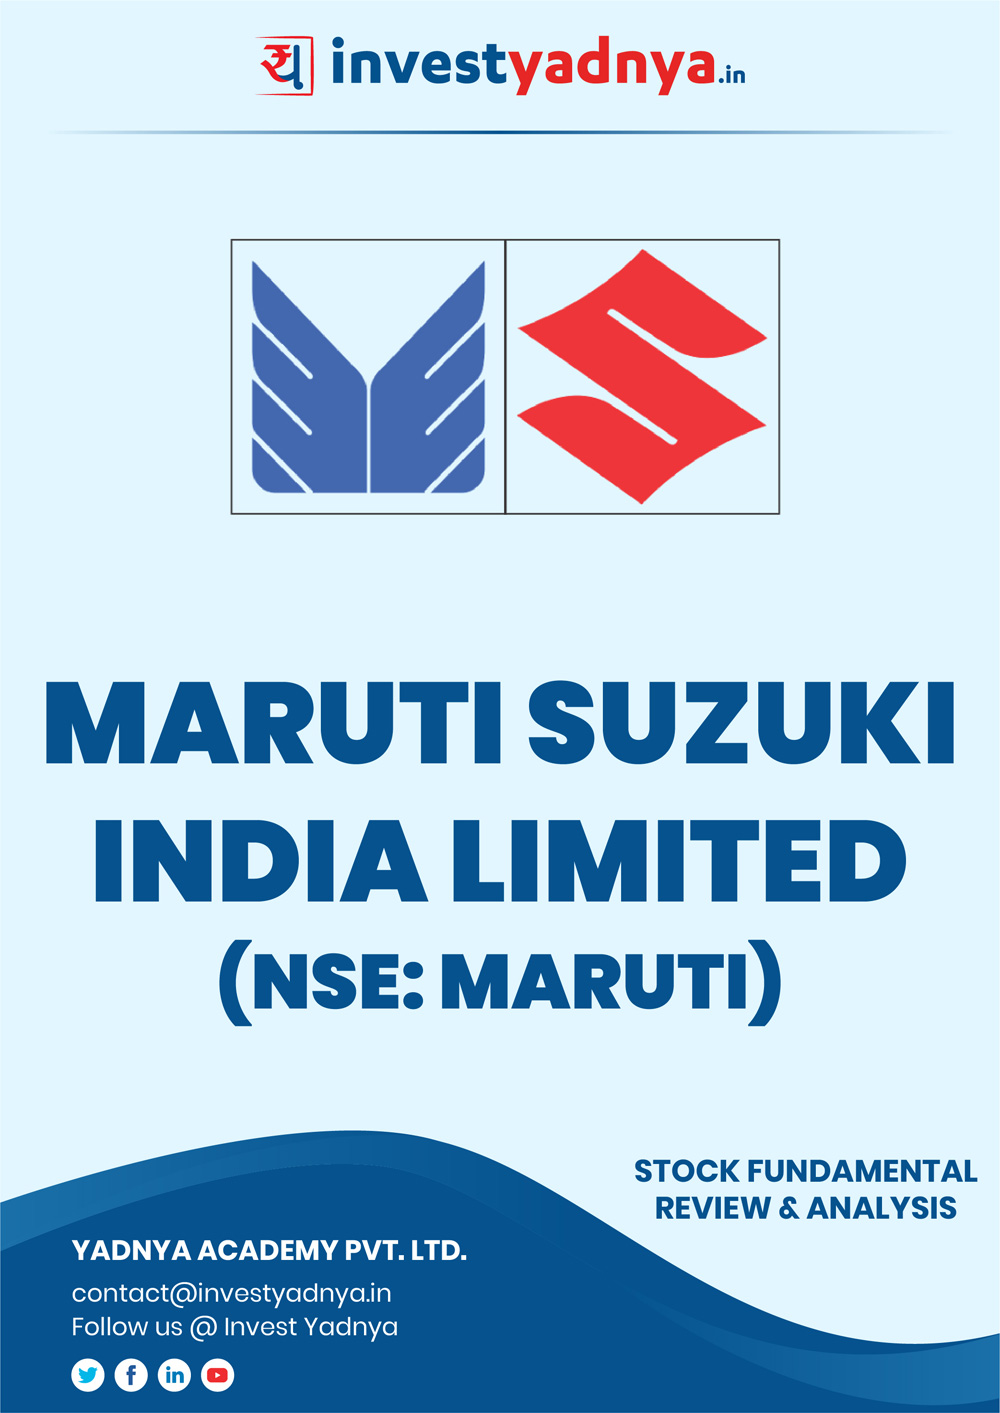 This e-book offers a detailed fundamental analysis of Maruti Suzuki India Ltd, considering both Financial and Equity Research Parameters. It reviews the company, industry, competitors, financials, etc. ✔ Detailed Analysis ✔ Research Reports